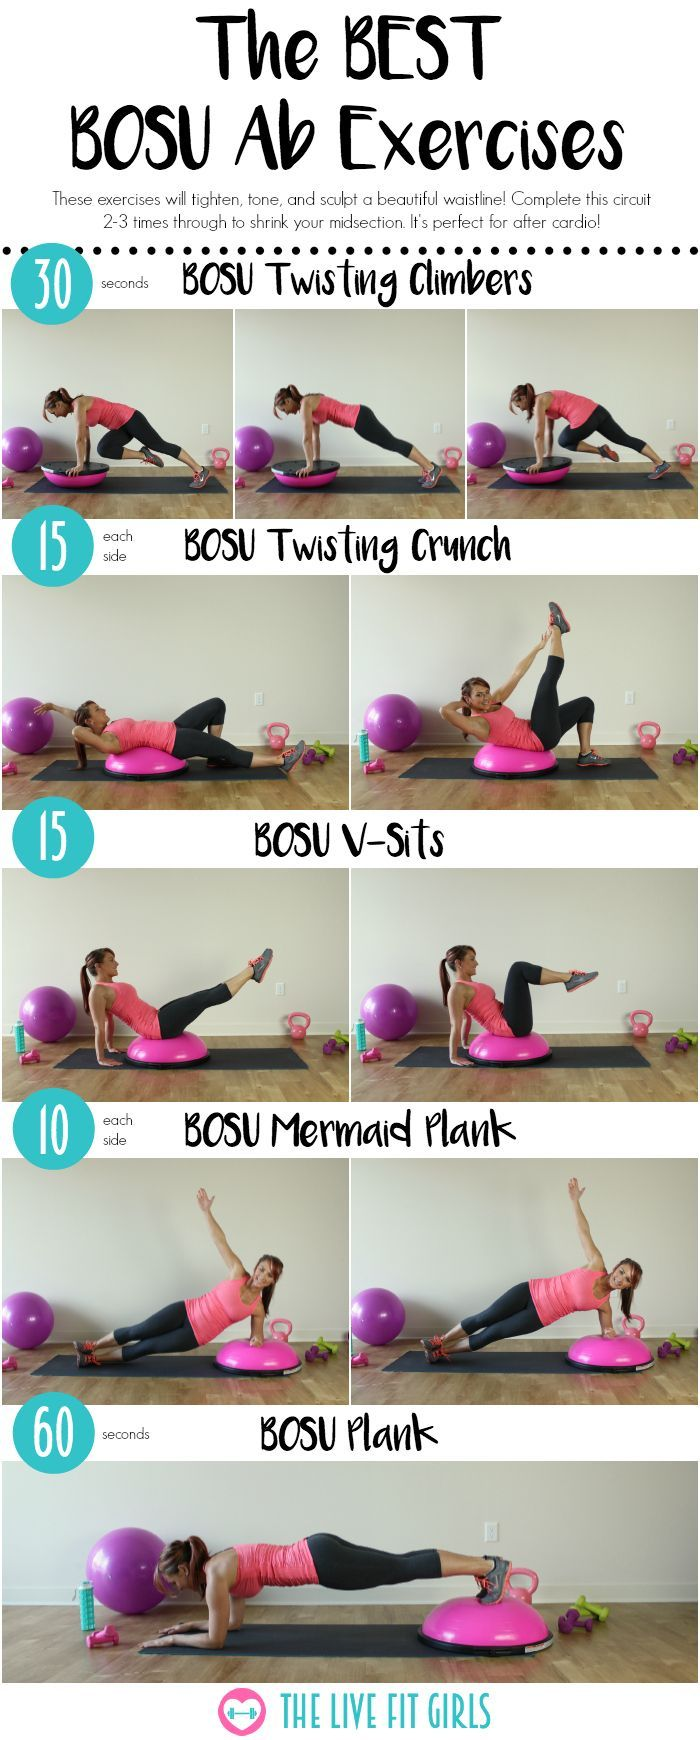 The BEST Bosu Ab Workout...get those abs firing with these 5 BOSU exercises